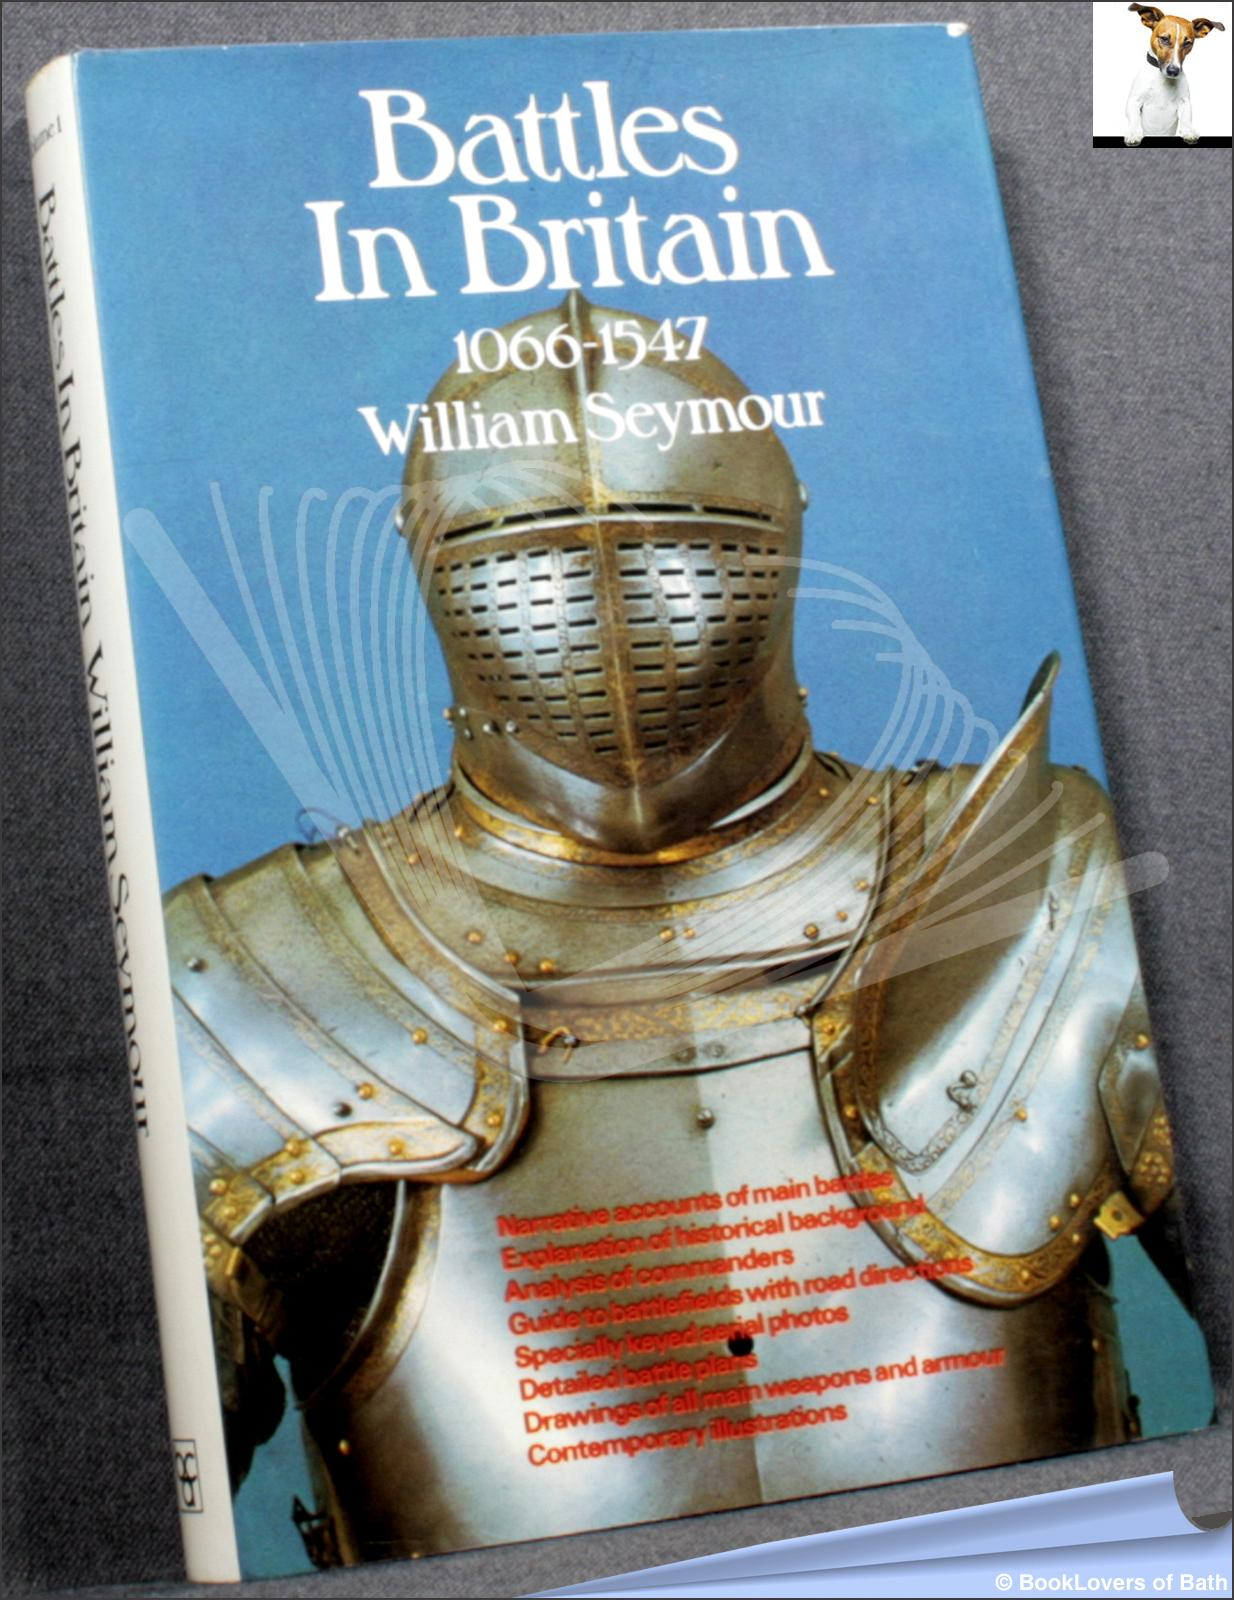 Battles in Britain and Their Political Background Volume 1 1066-1547 - William Seymour